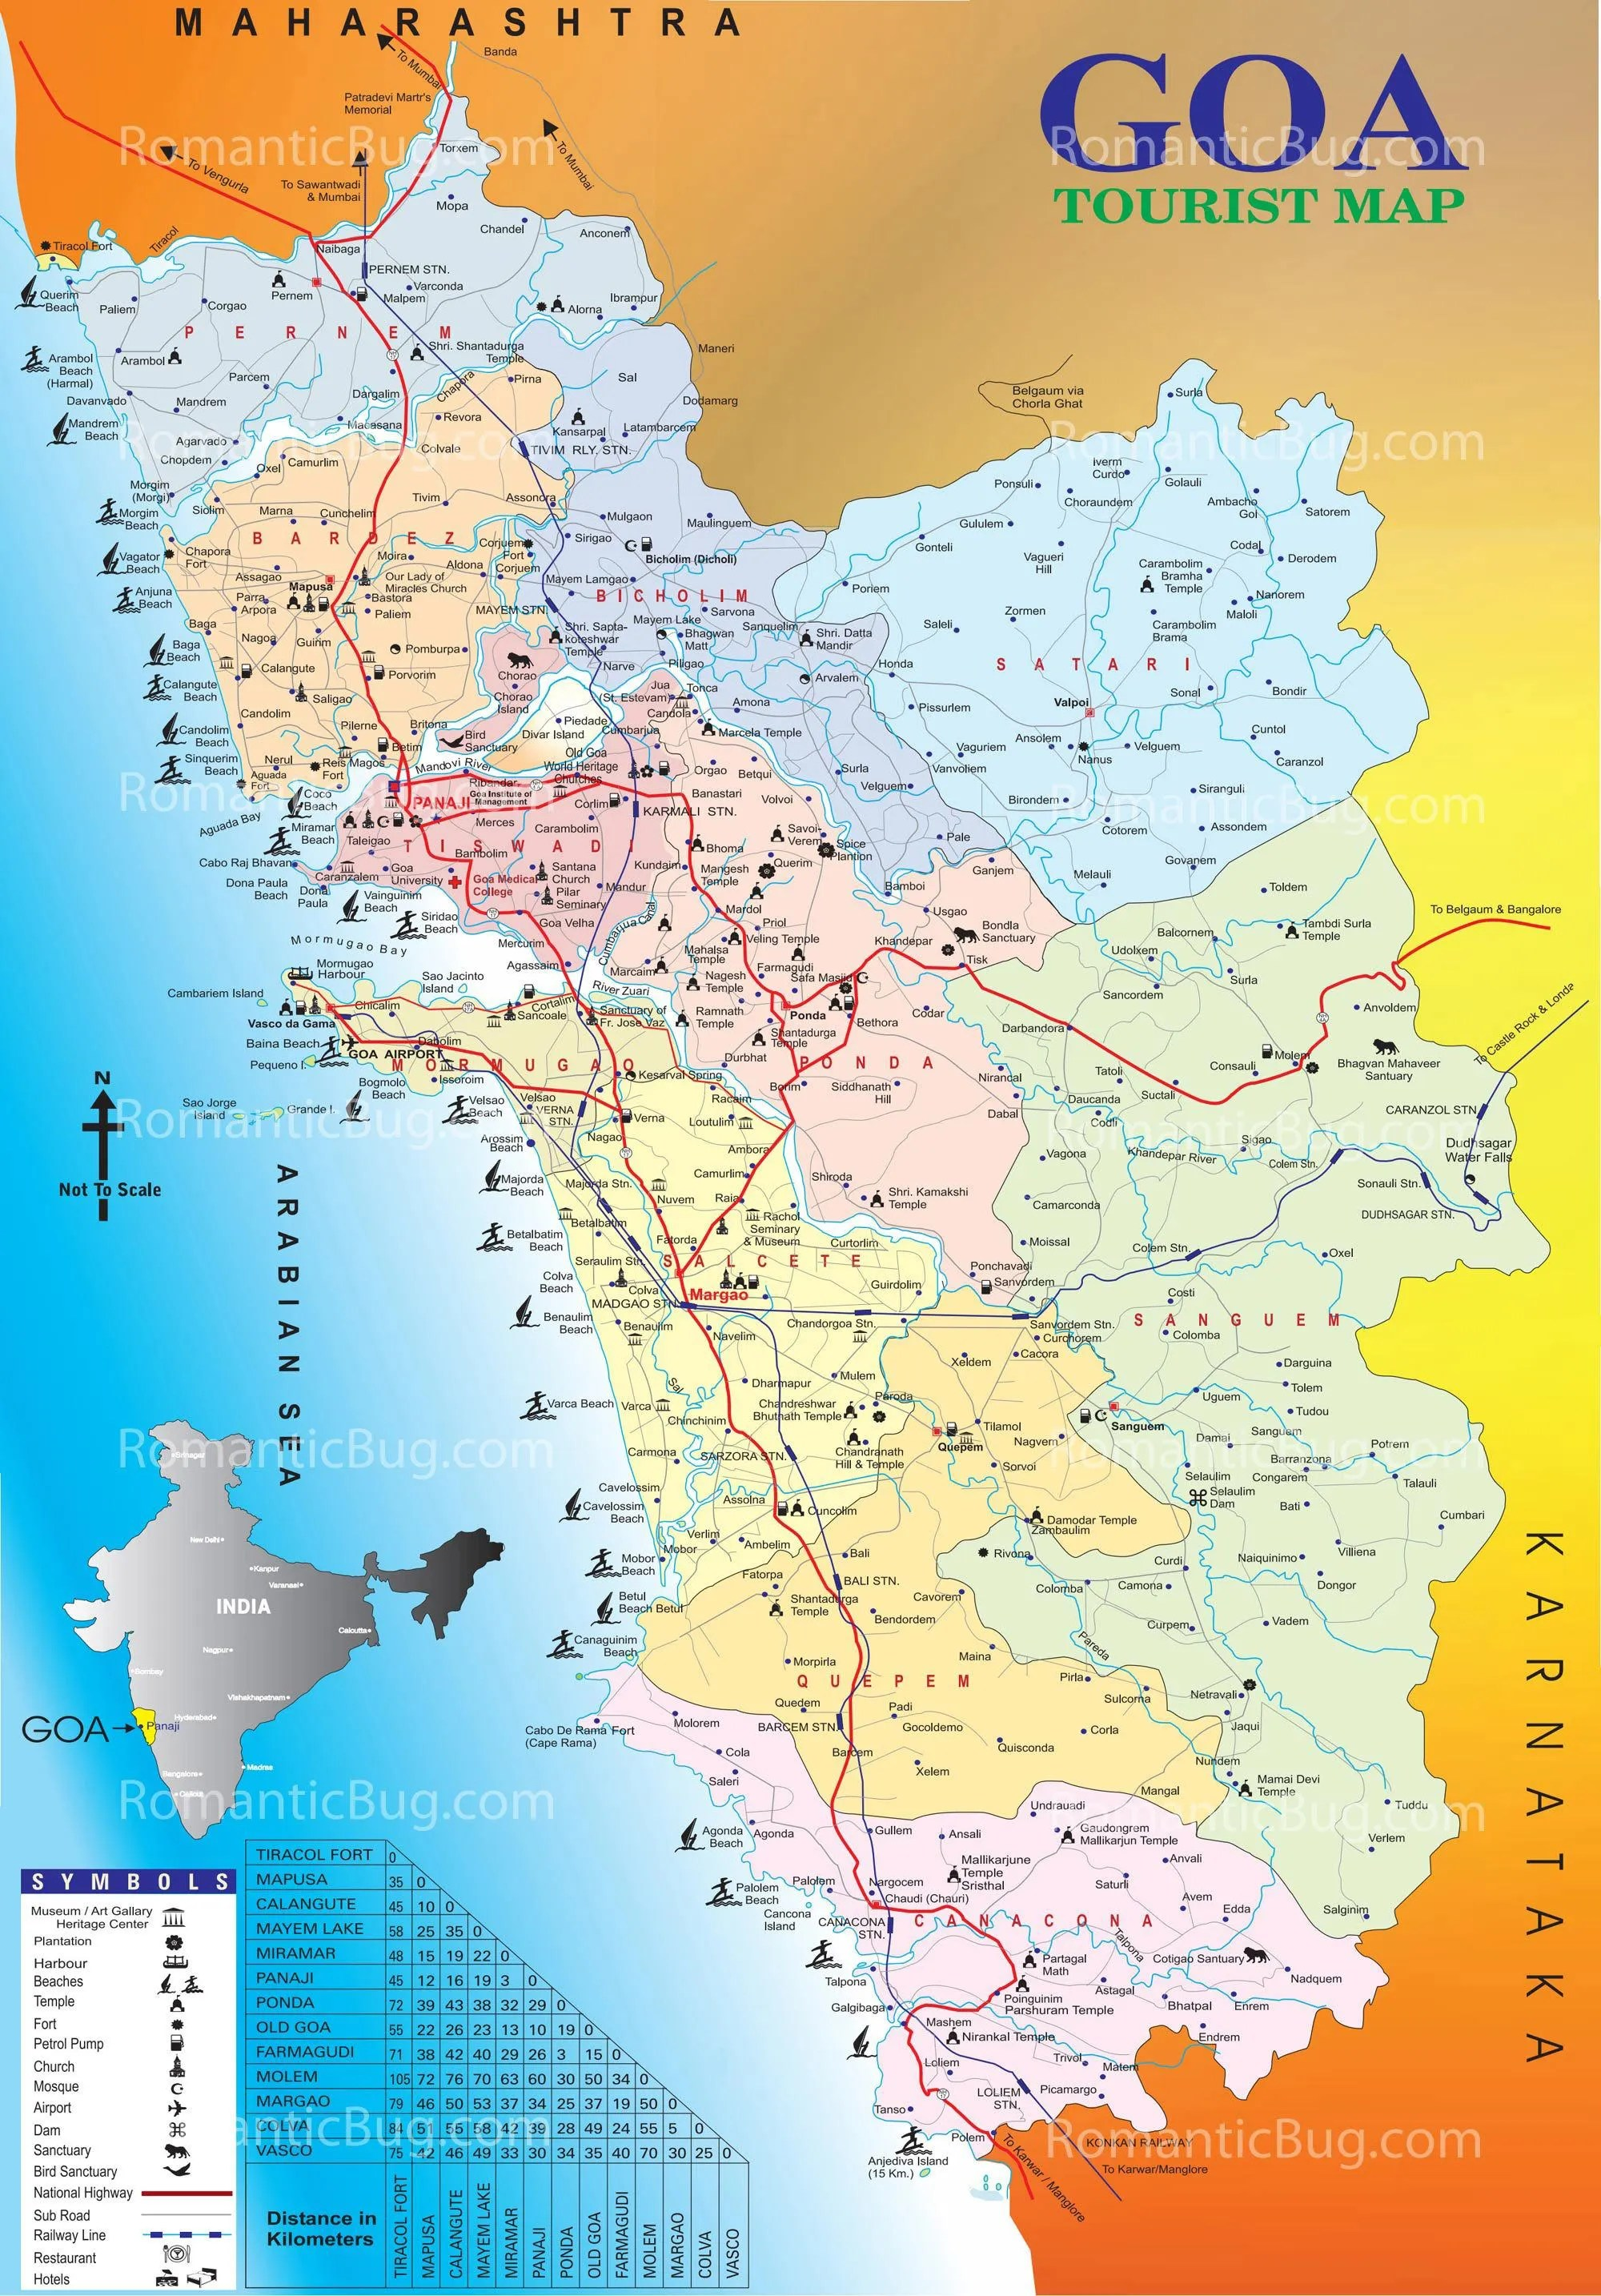 City tours excursions and tickets in Goa and surroundings